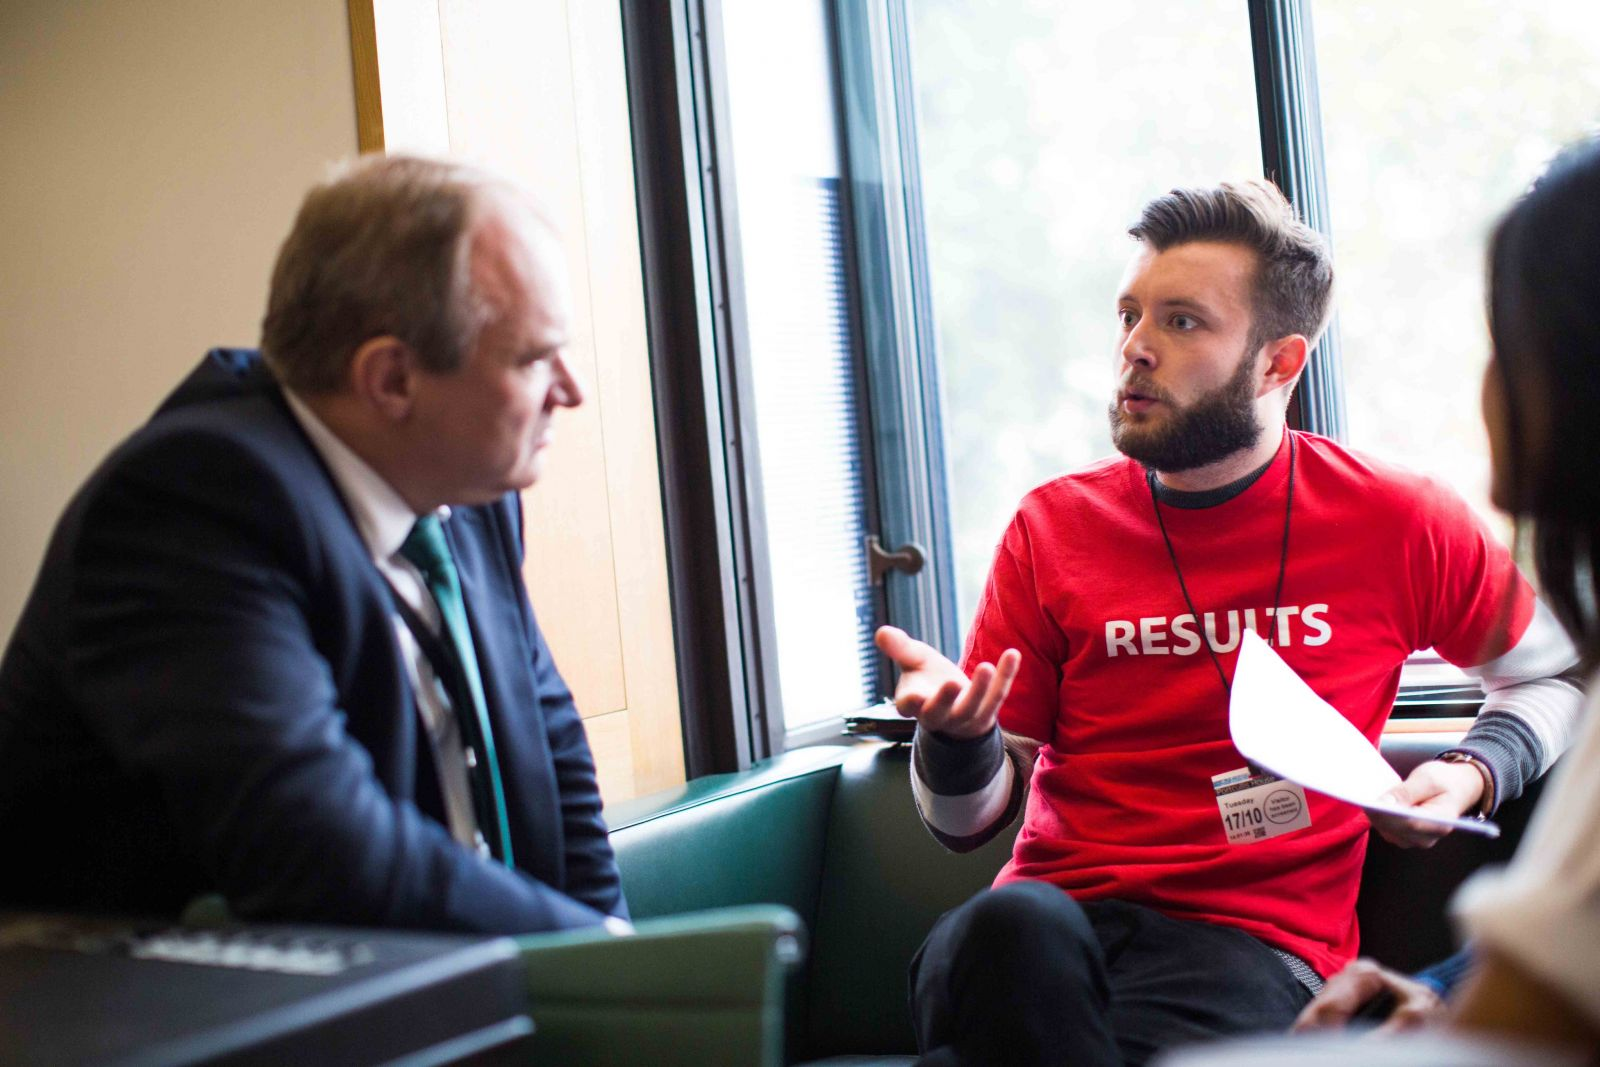 RESULTS campaigner speaks with parliamentarian